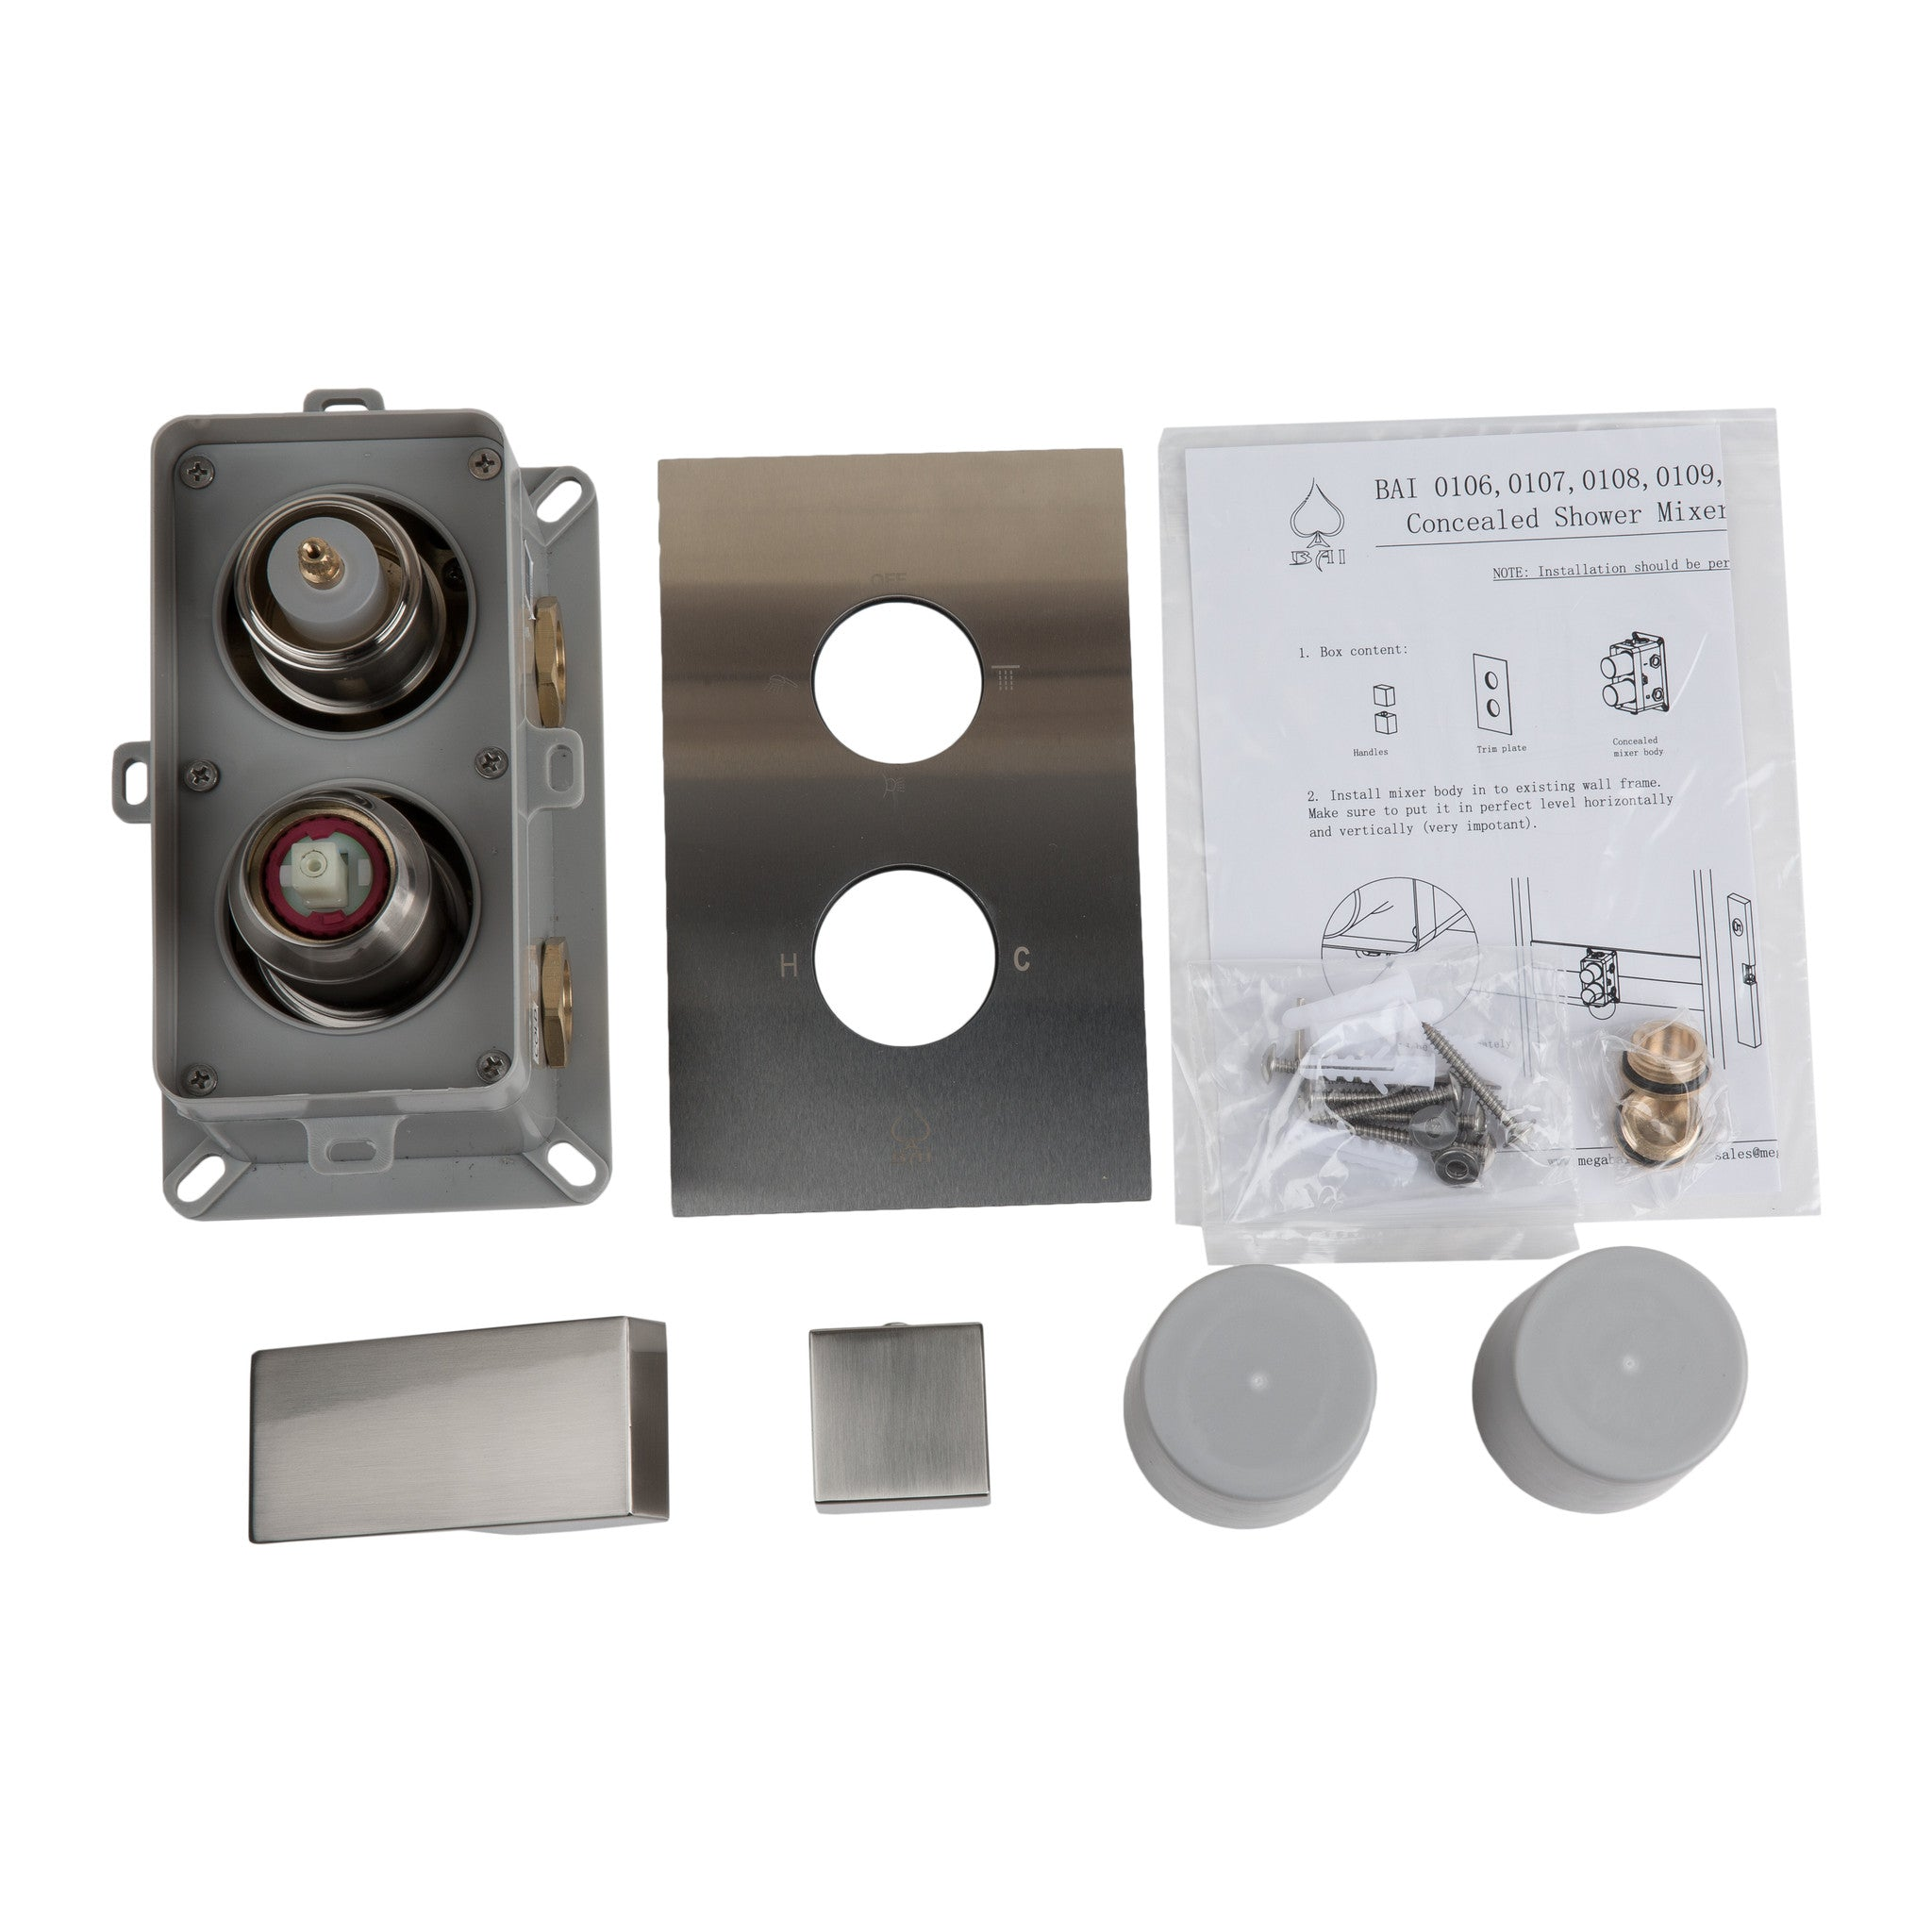 bai concealed stainless steel shower mixer with water pressure balance valve 23 functions - Shower Knobs